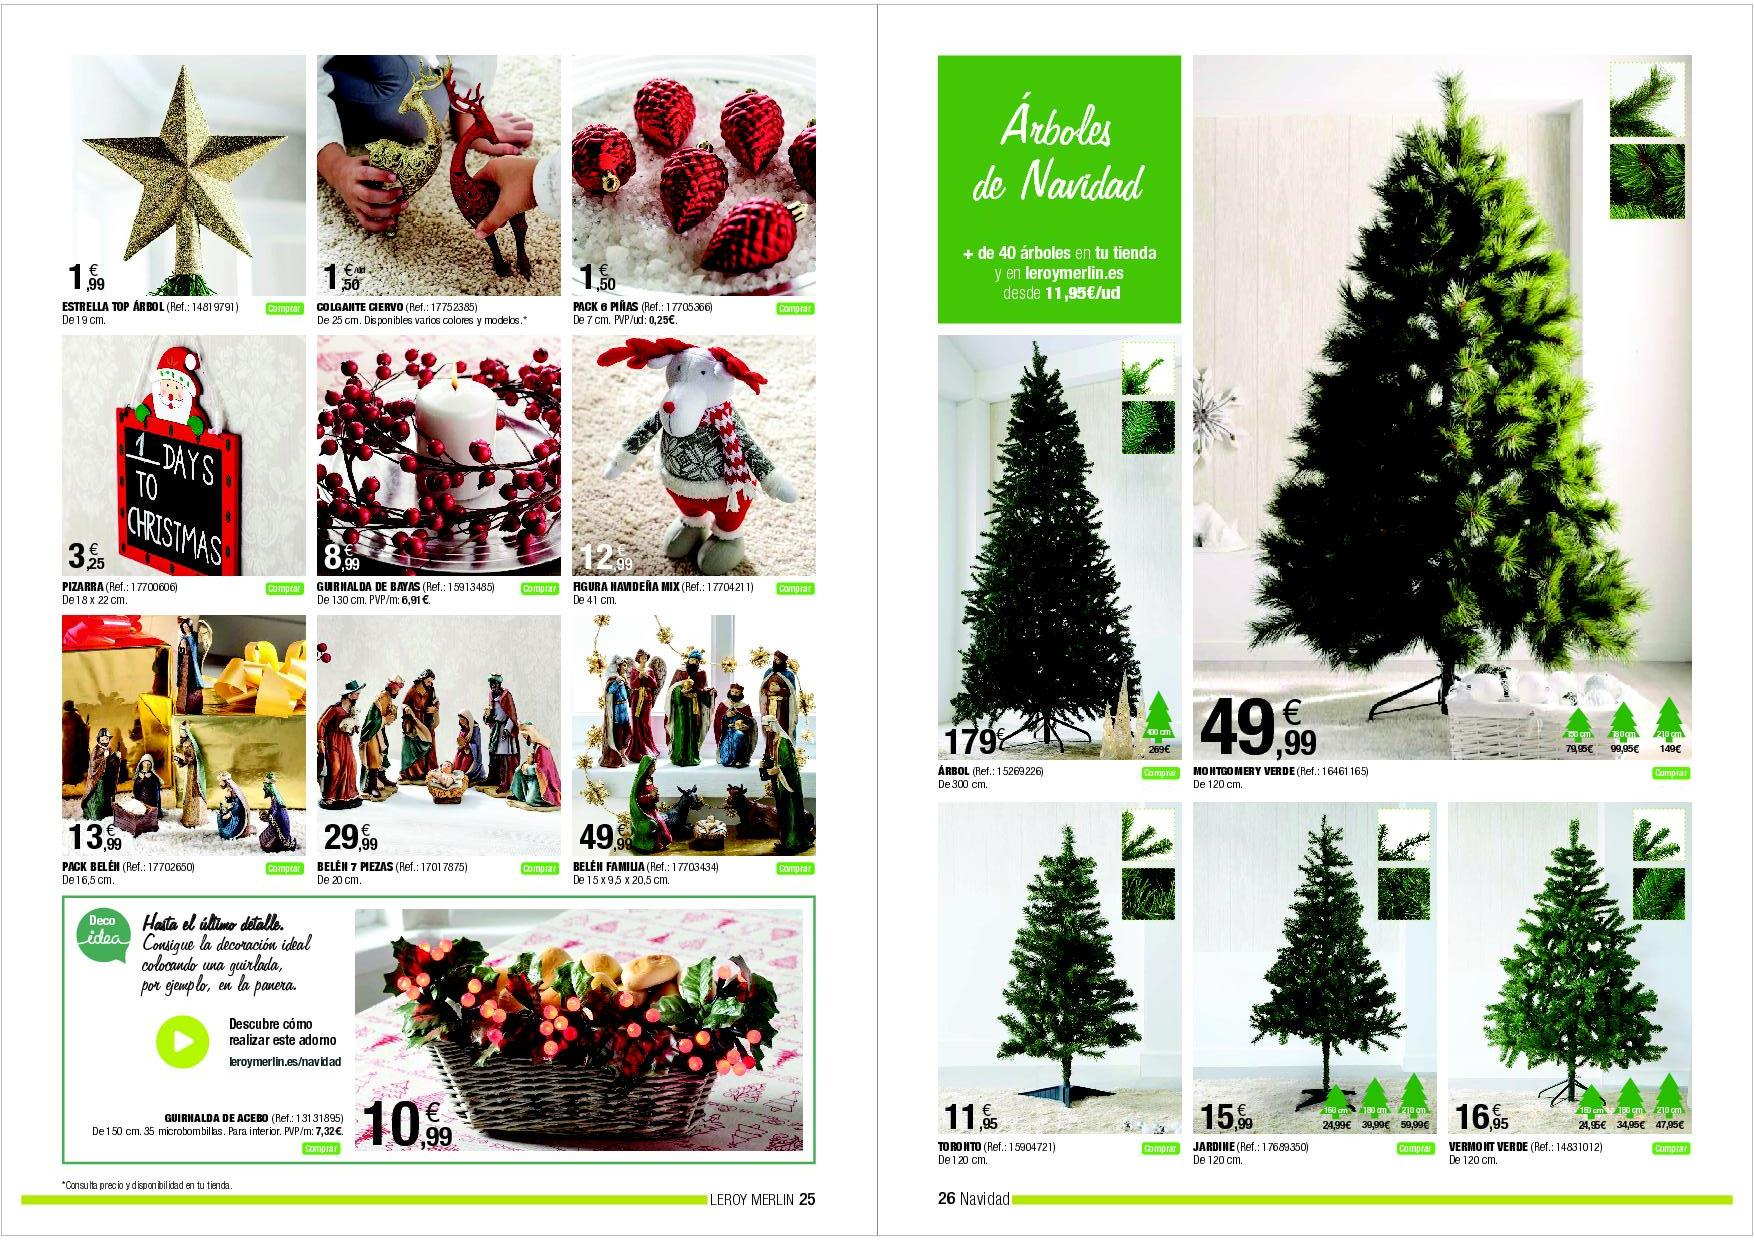 Catalogo navidad leroy merlin 201513 for Leroy merlin cadiz catalogo